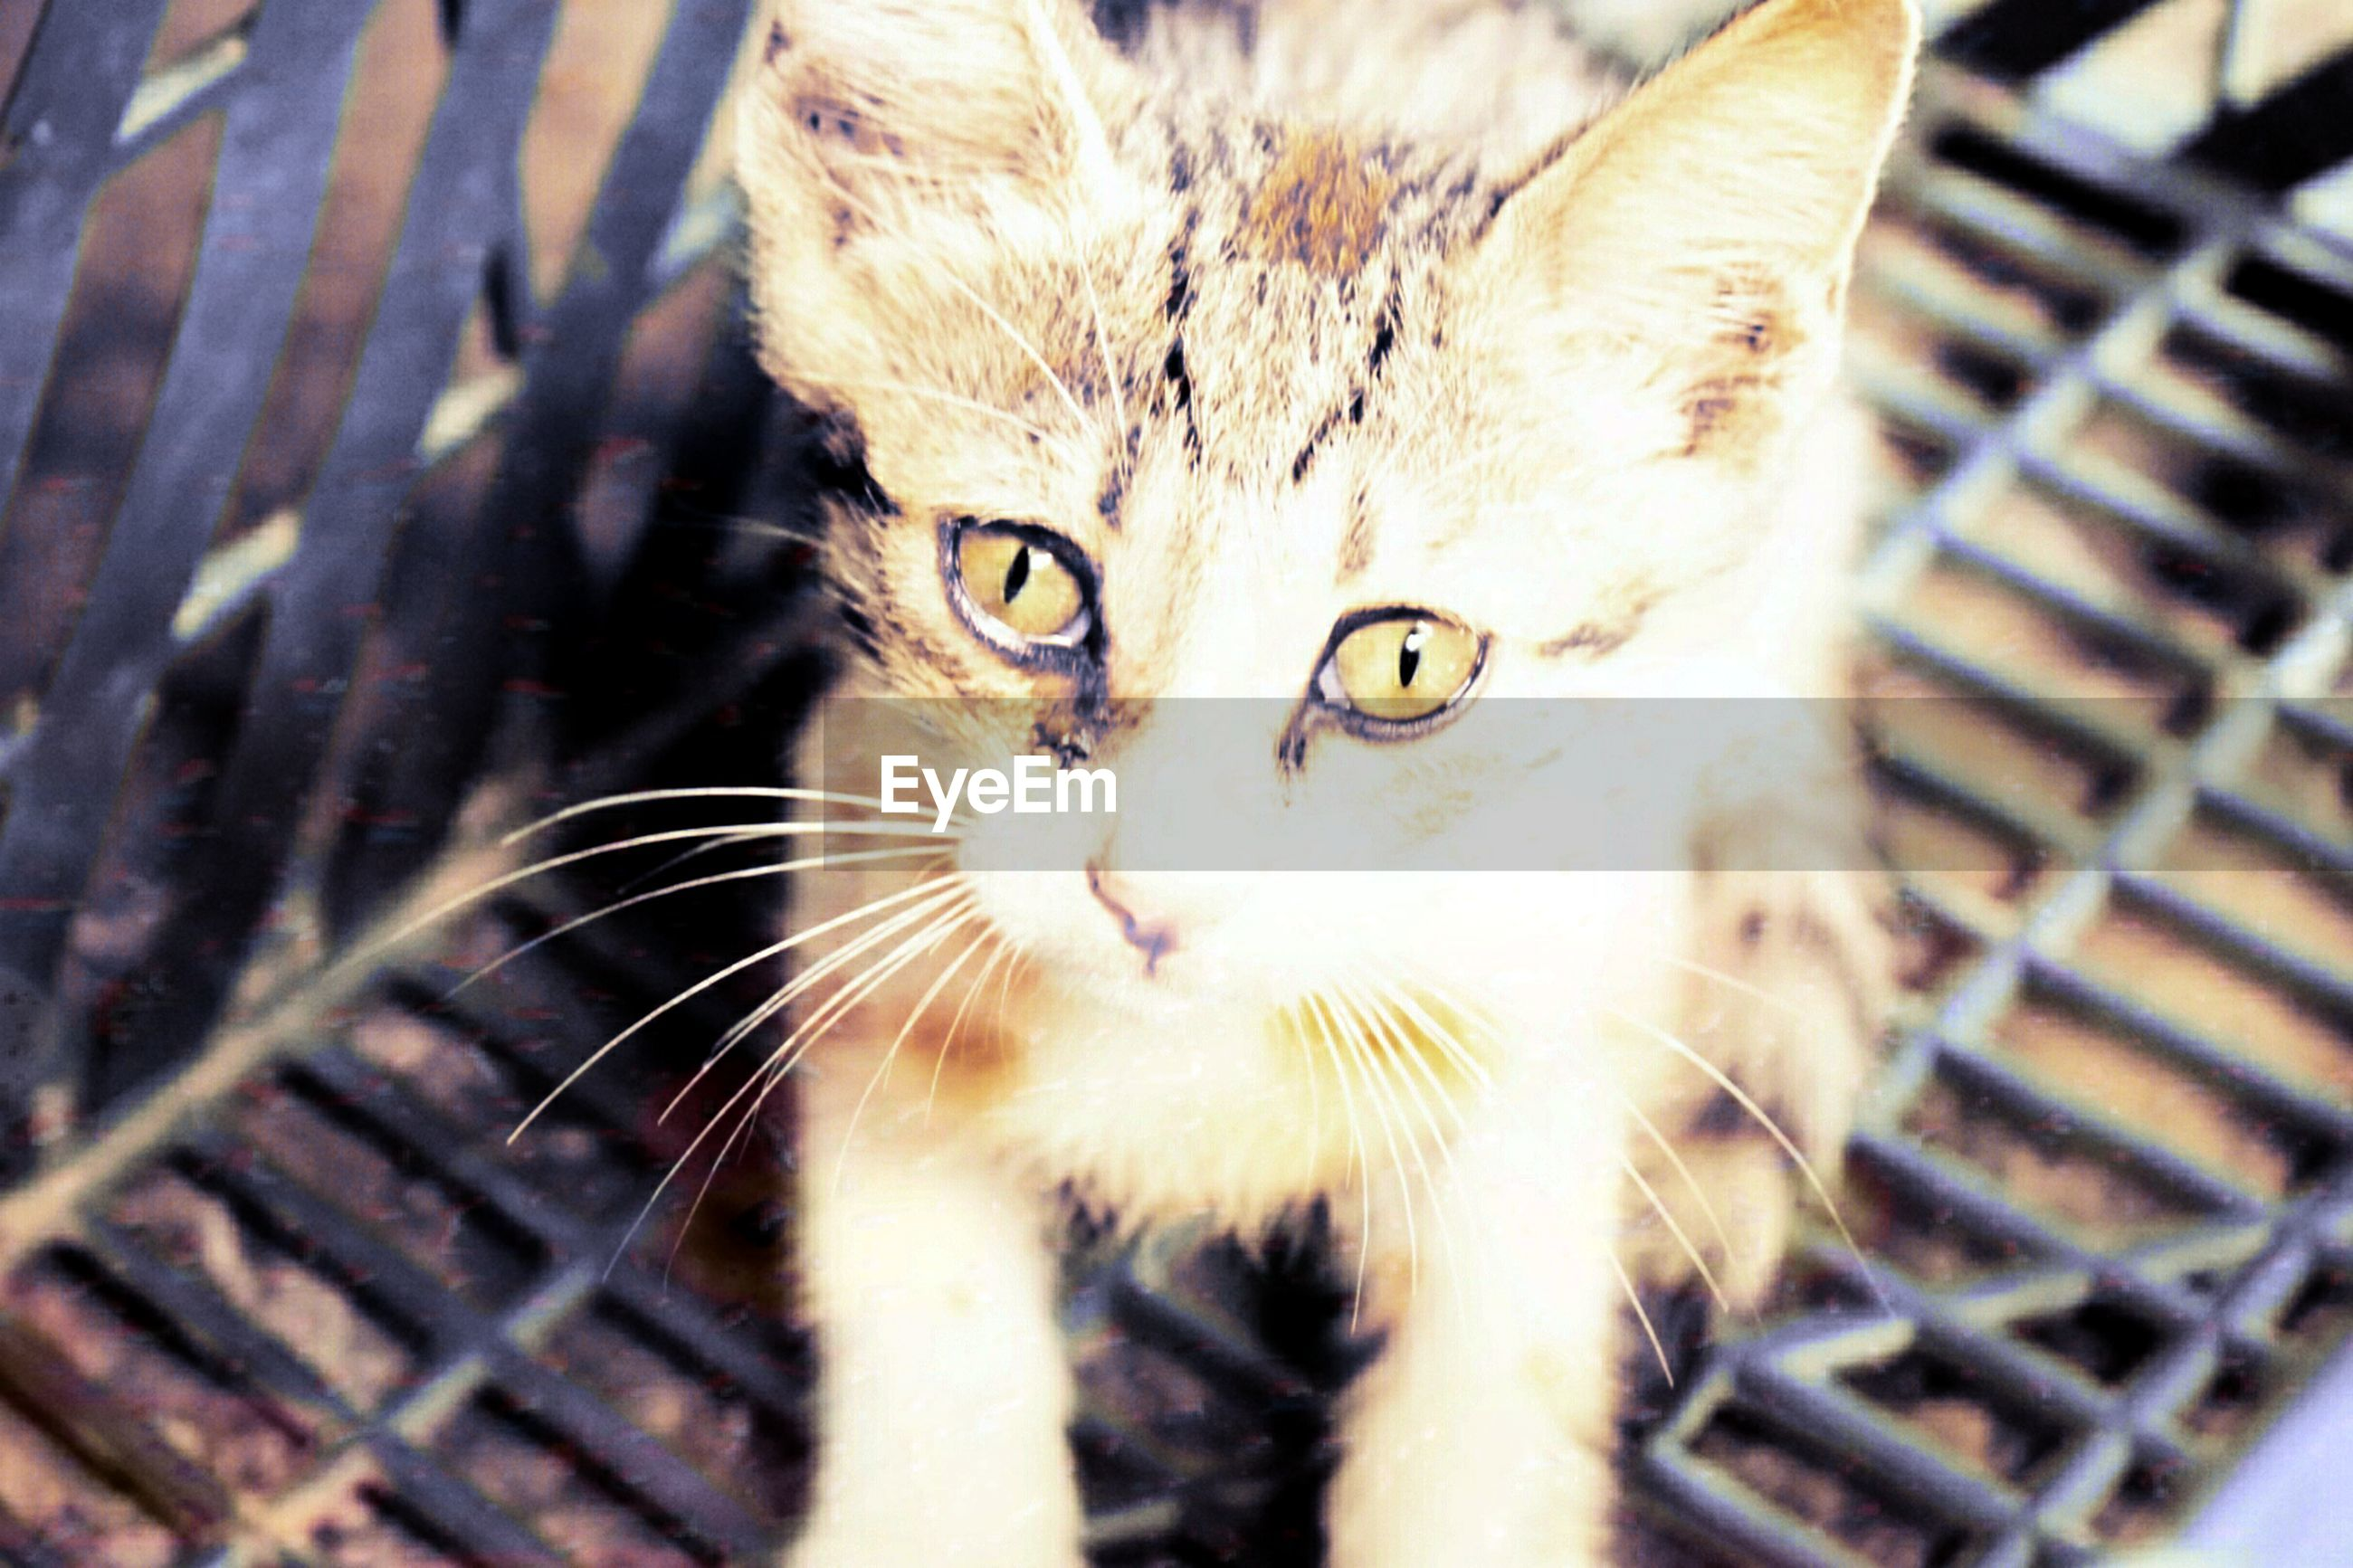 domestic cat, cat, feline, domestic animals, pets, whisker, mammal, portrait, close-up, staring, animal head, animal eye, alertness, no people, focus on foreground, selective focus, animal body part